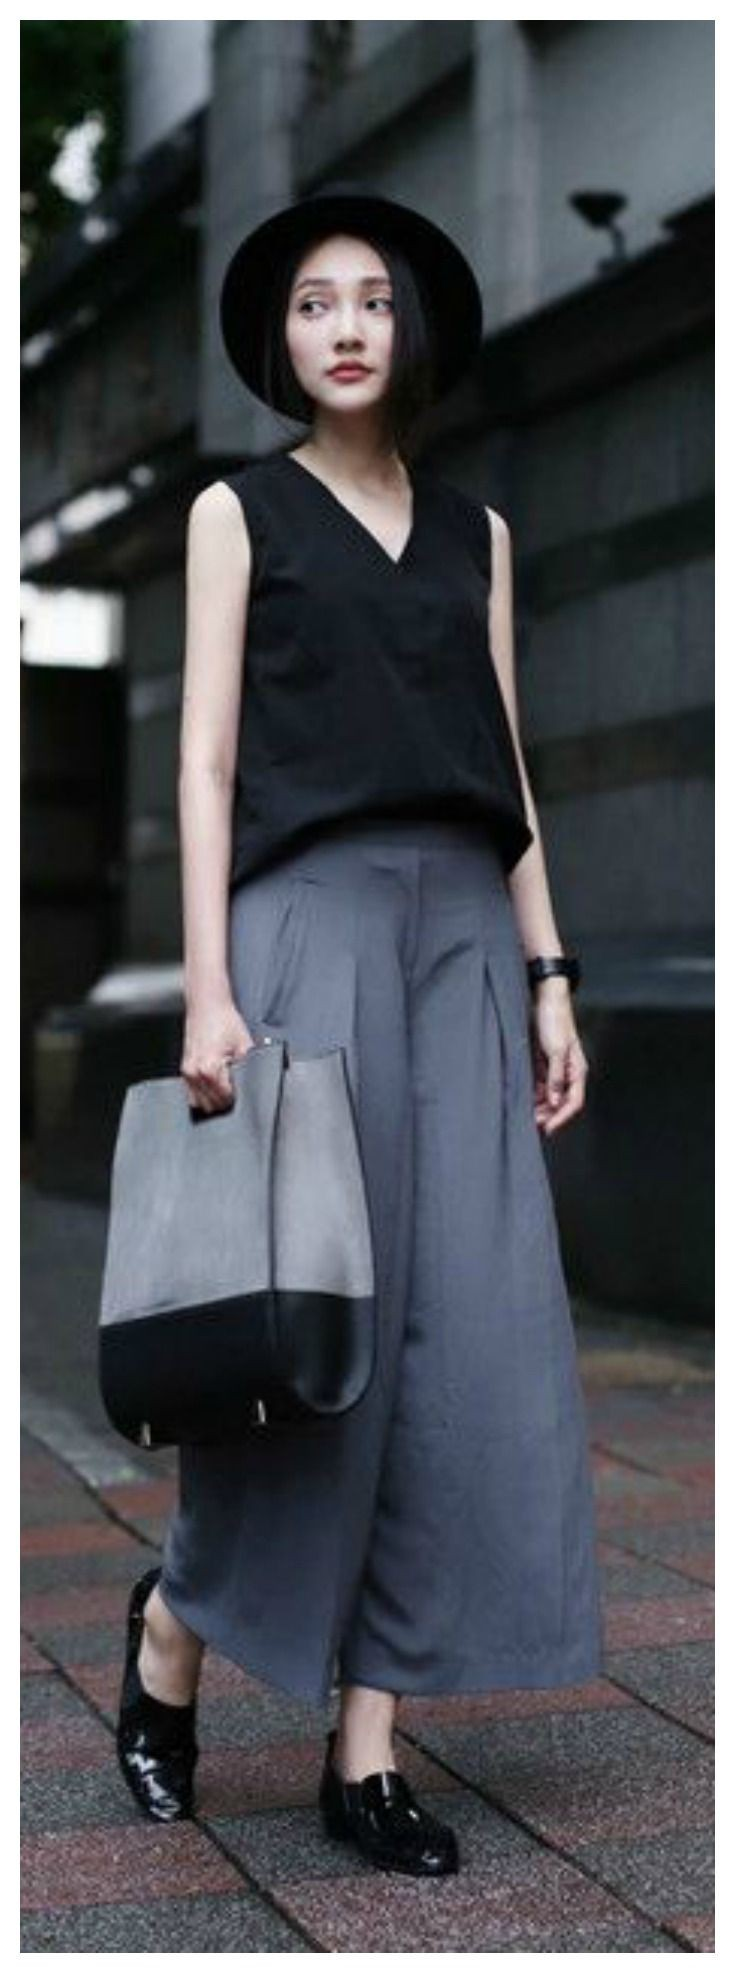 Lovely High Waist Palazzo Dress For Night Out Japan Street Style